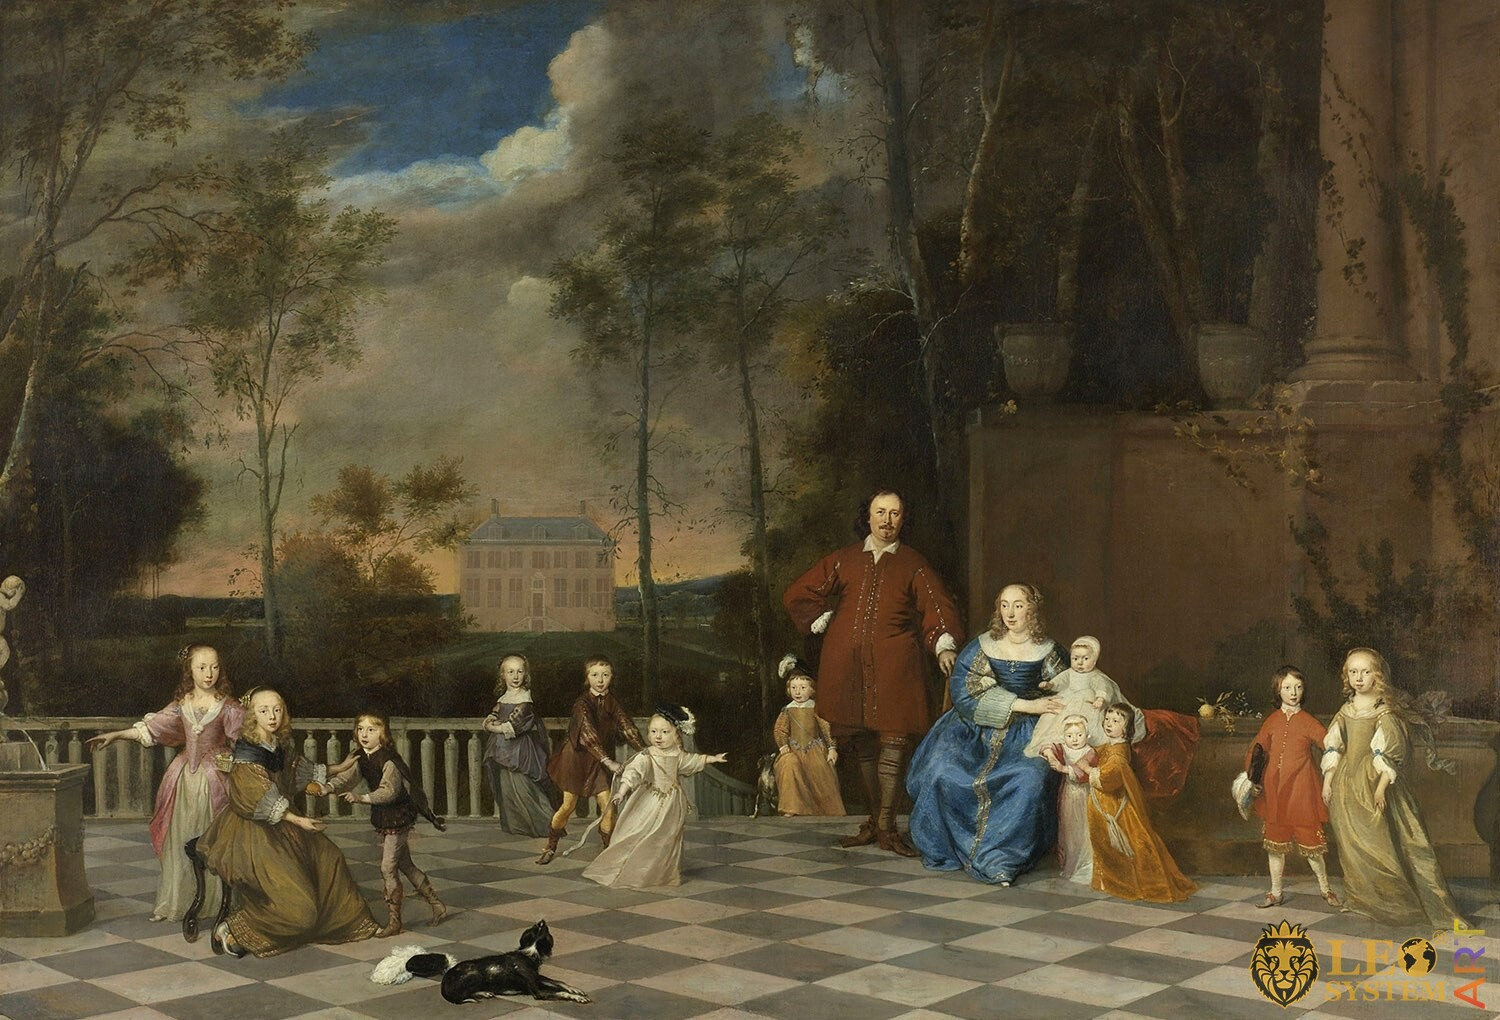 Amsterdam Merchant Jeremias van Collen with his Wife and their Twelve Children, Artist: Attributed to Pieter van Anraedt, 1655-1657, Amsterdam, Netherlands, Original painting